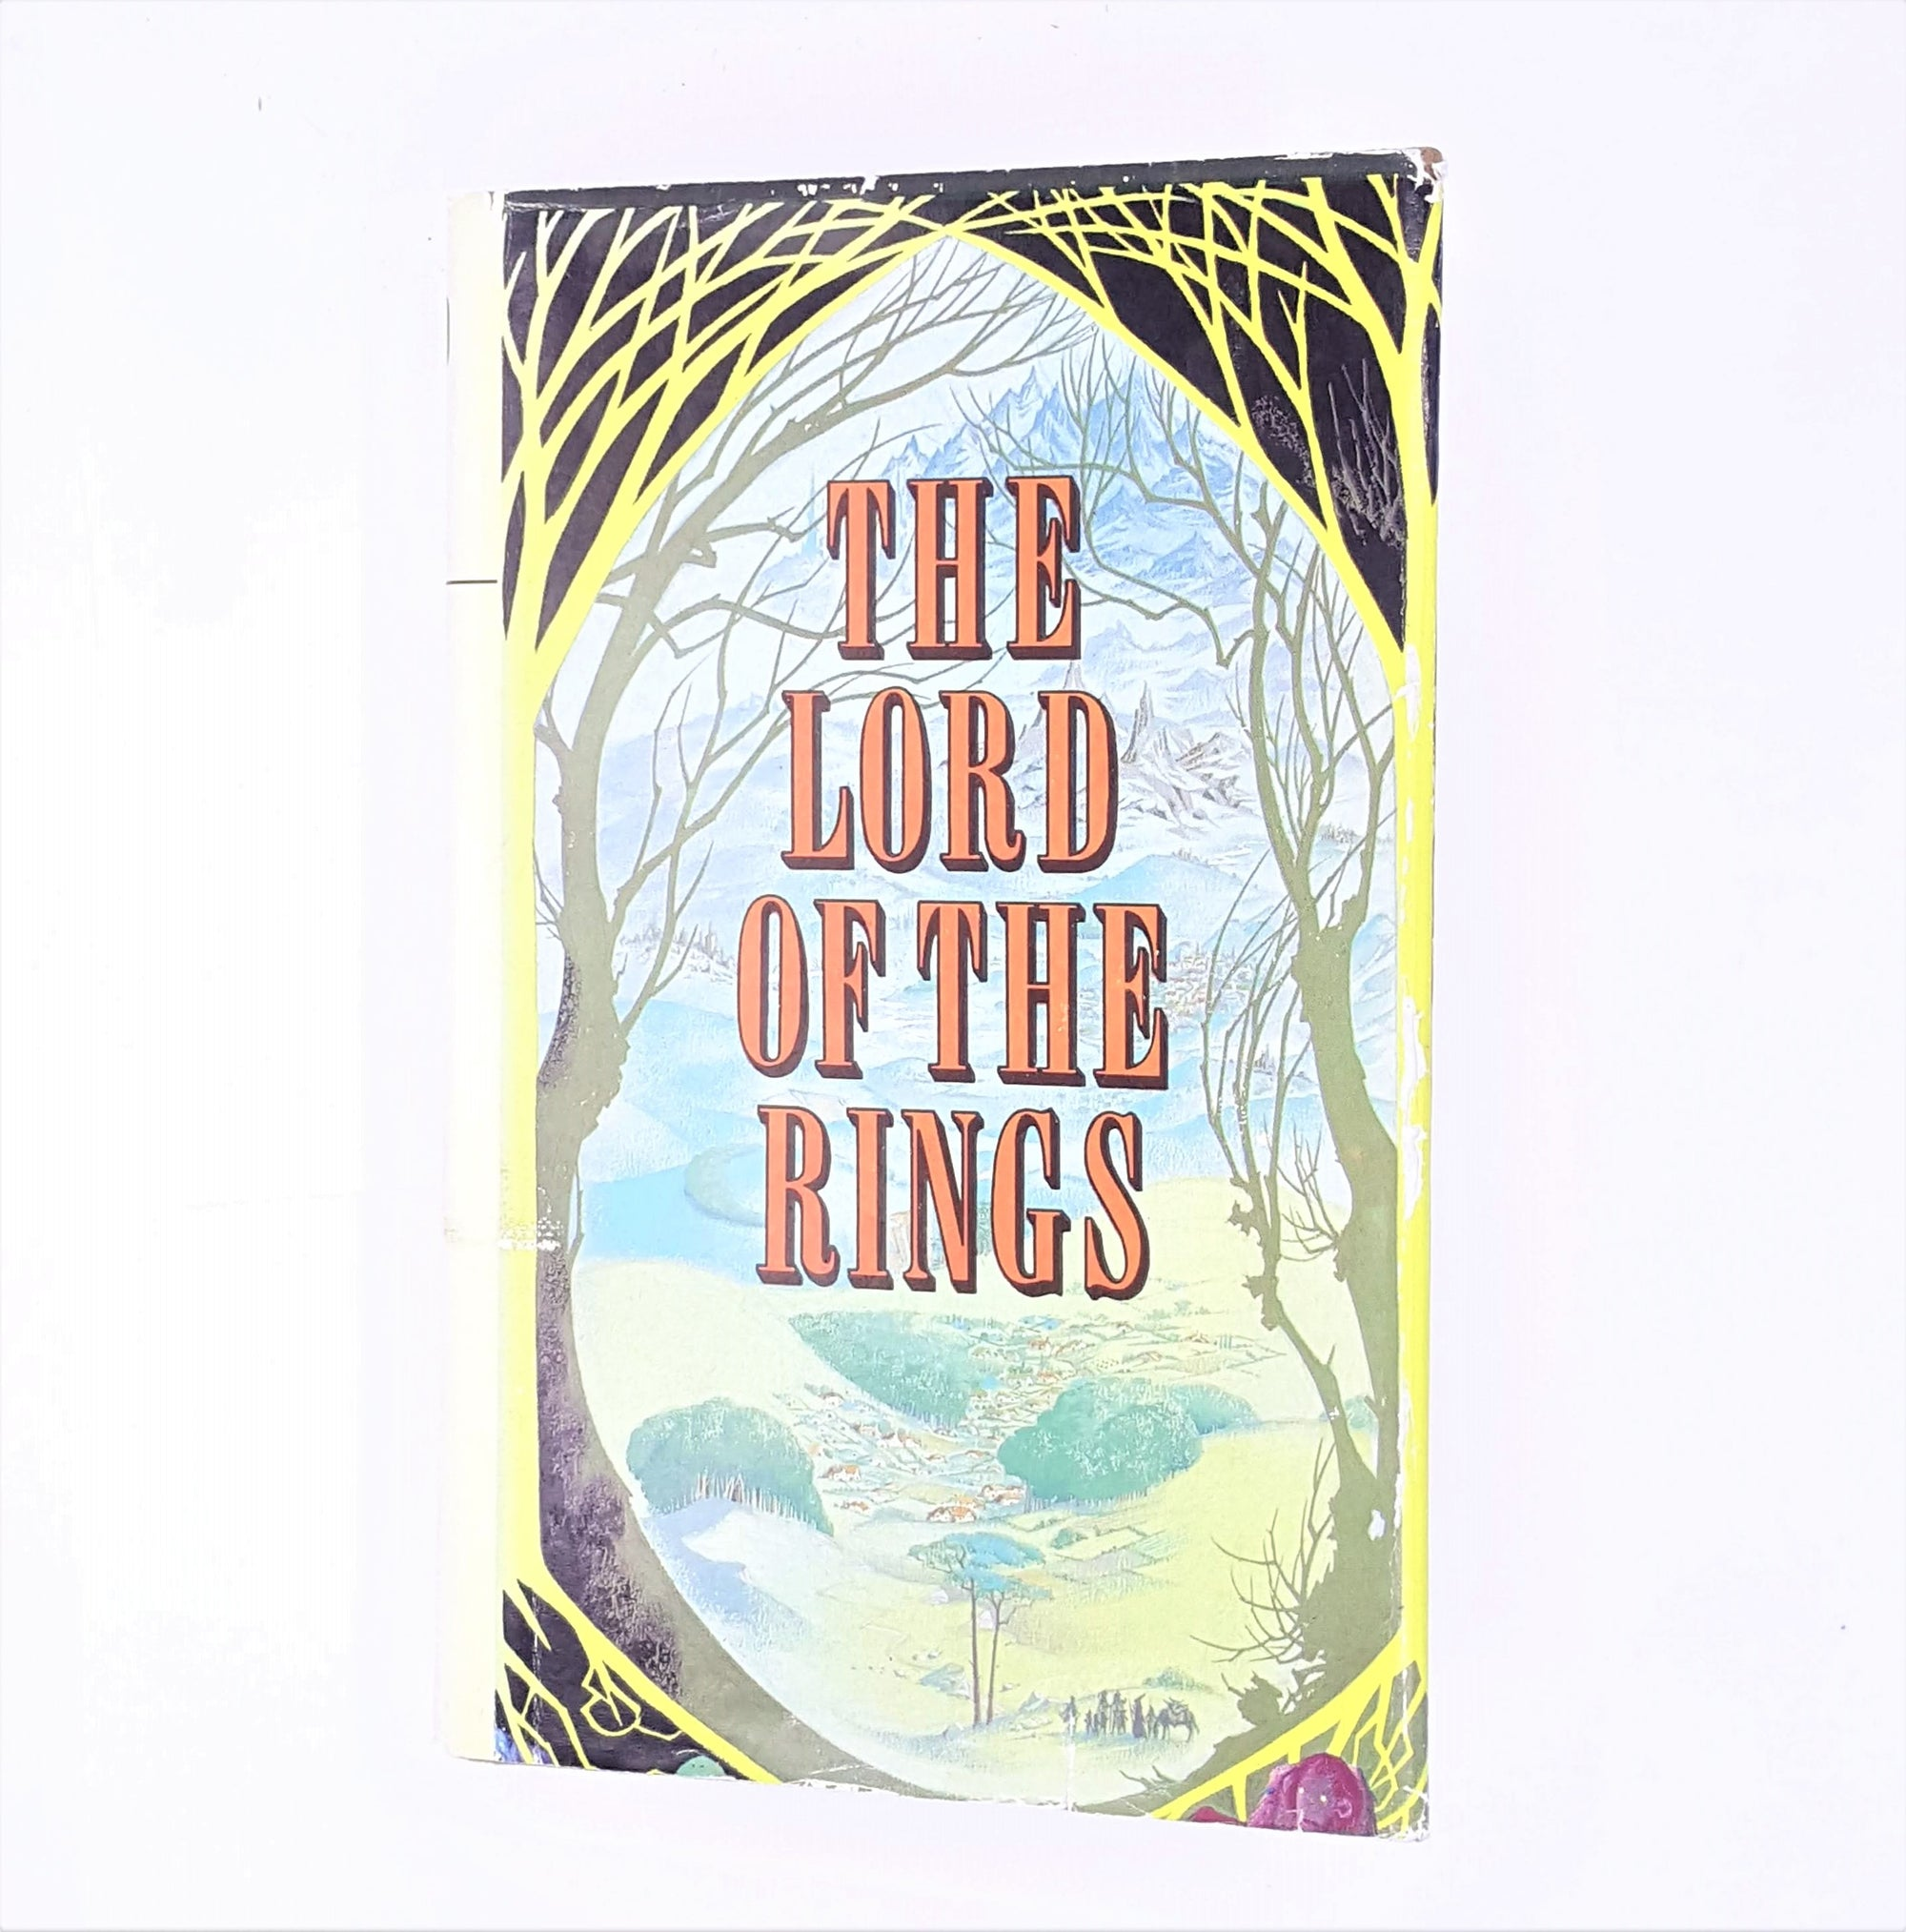 J.R.R. Tolkien's The Lord of the Rings 1973